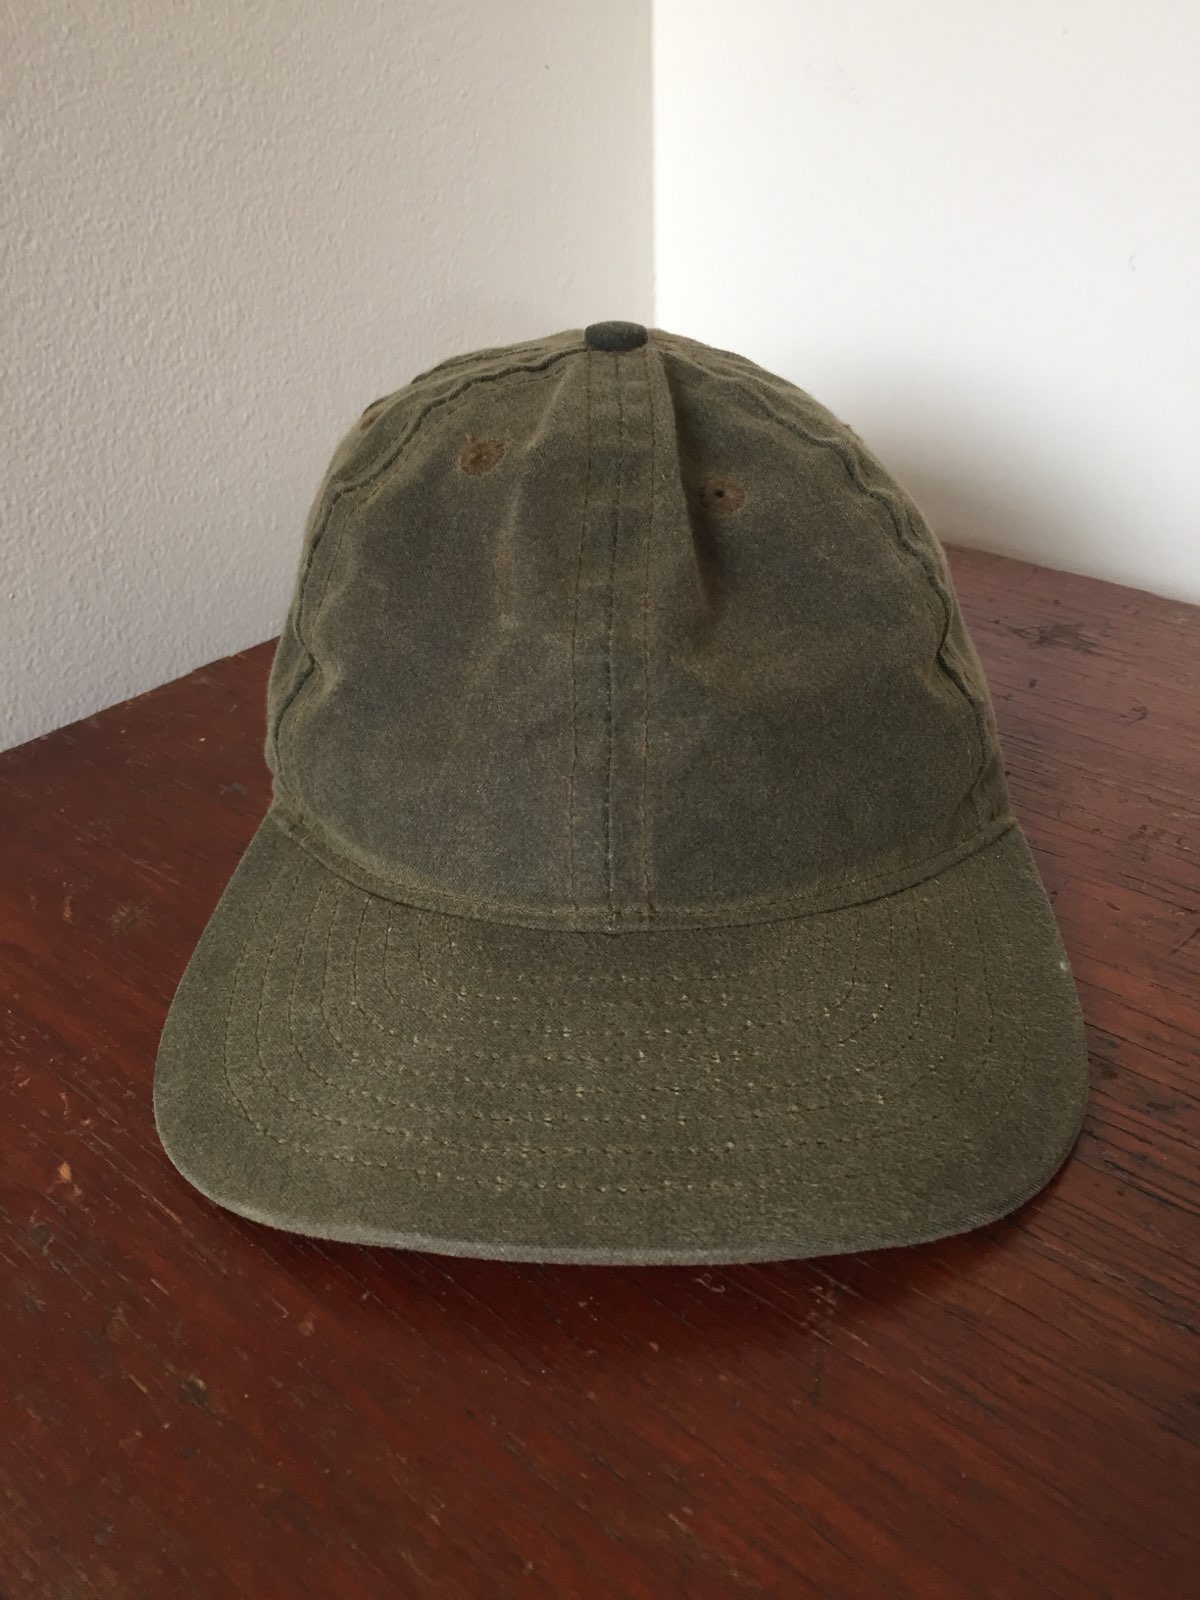 db1f4e5c79011 Fairends Waxed Canvas Ball Cap Hat